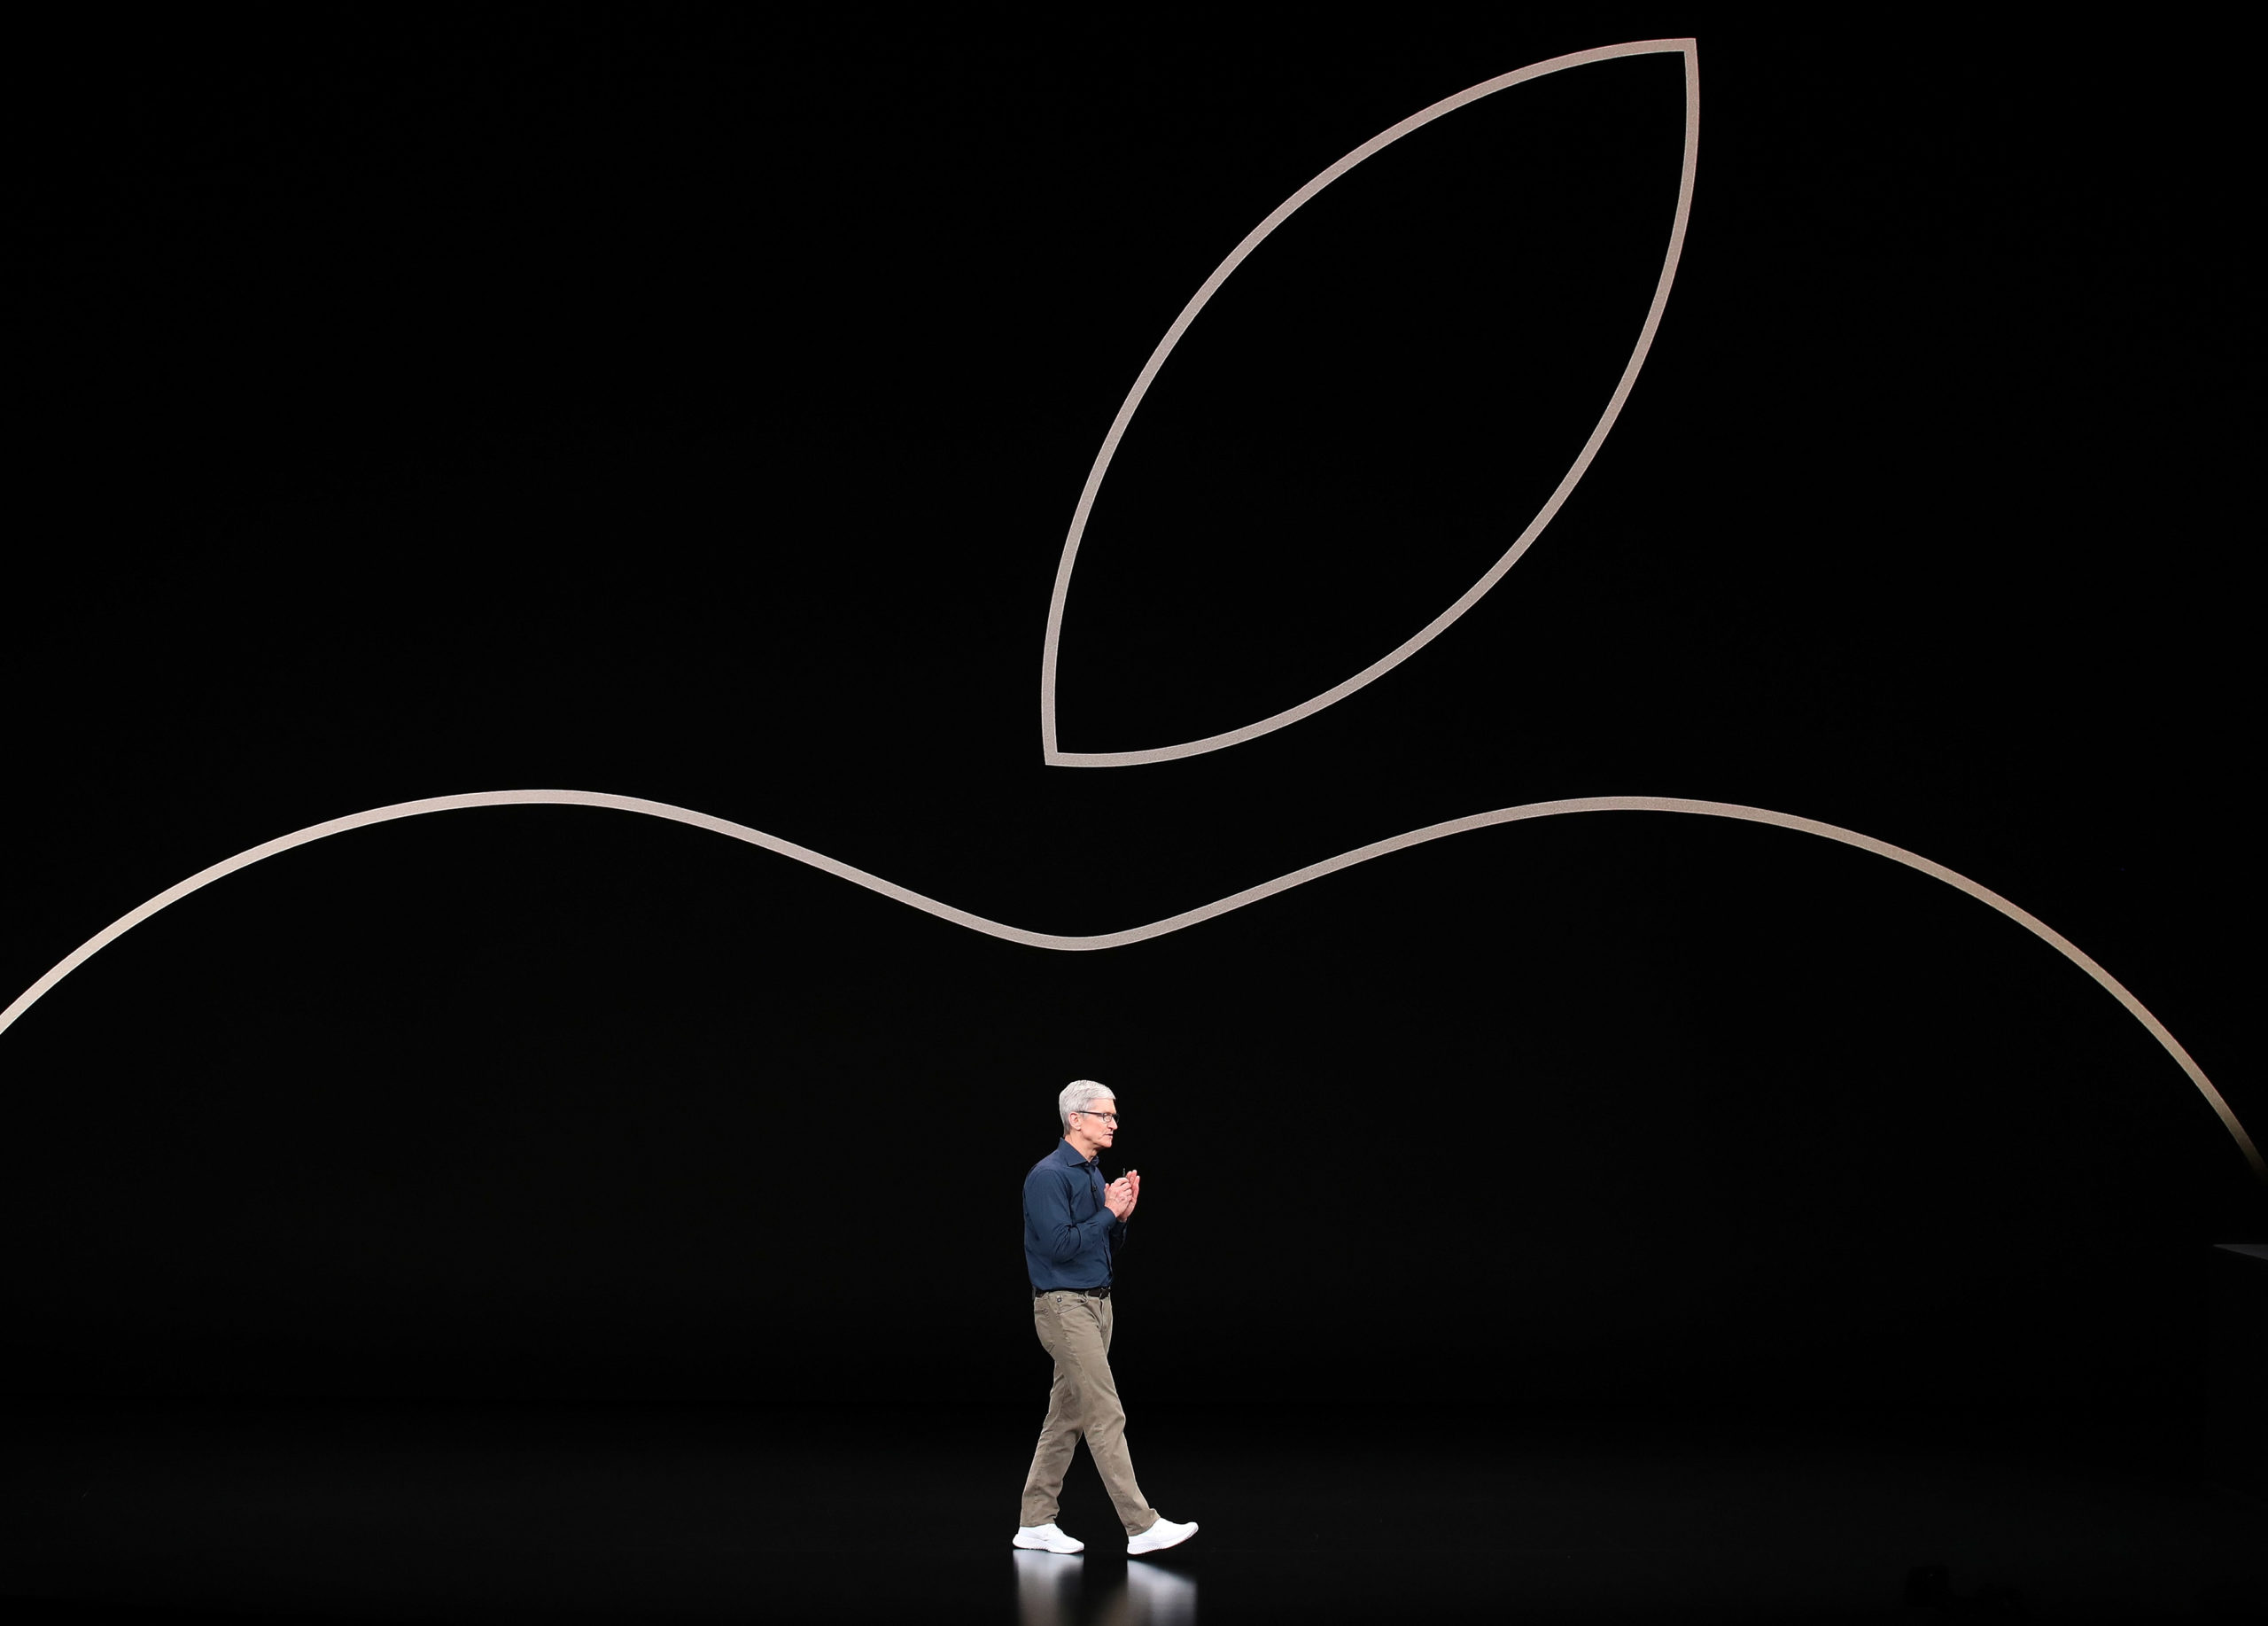 Tim Cook, chief executive officer of Apple, speaks during an Apple event in Cupertino, California. (Justin Sullivan/Getty Images)